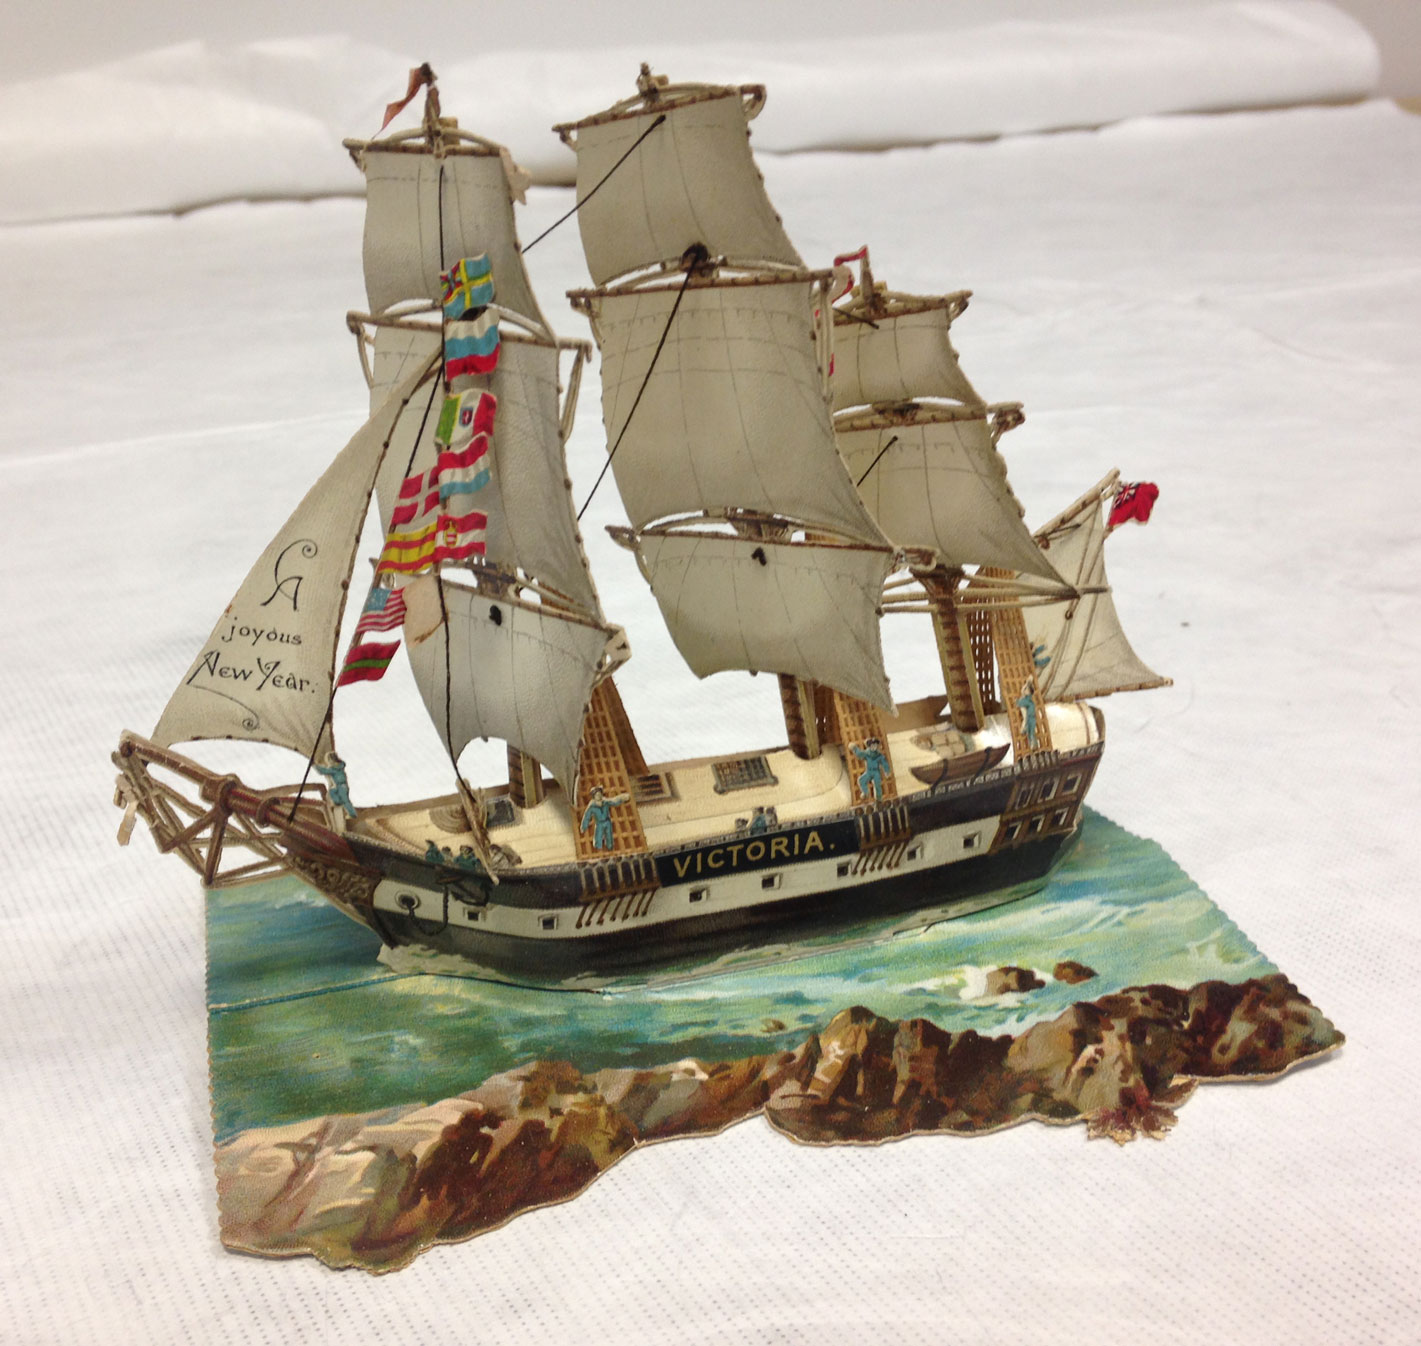 Pop-up New Year card of a galleon ship called 'Victoria' on the sea.